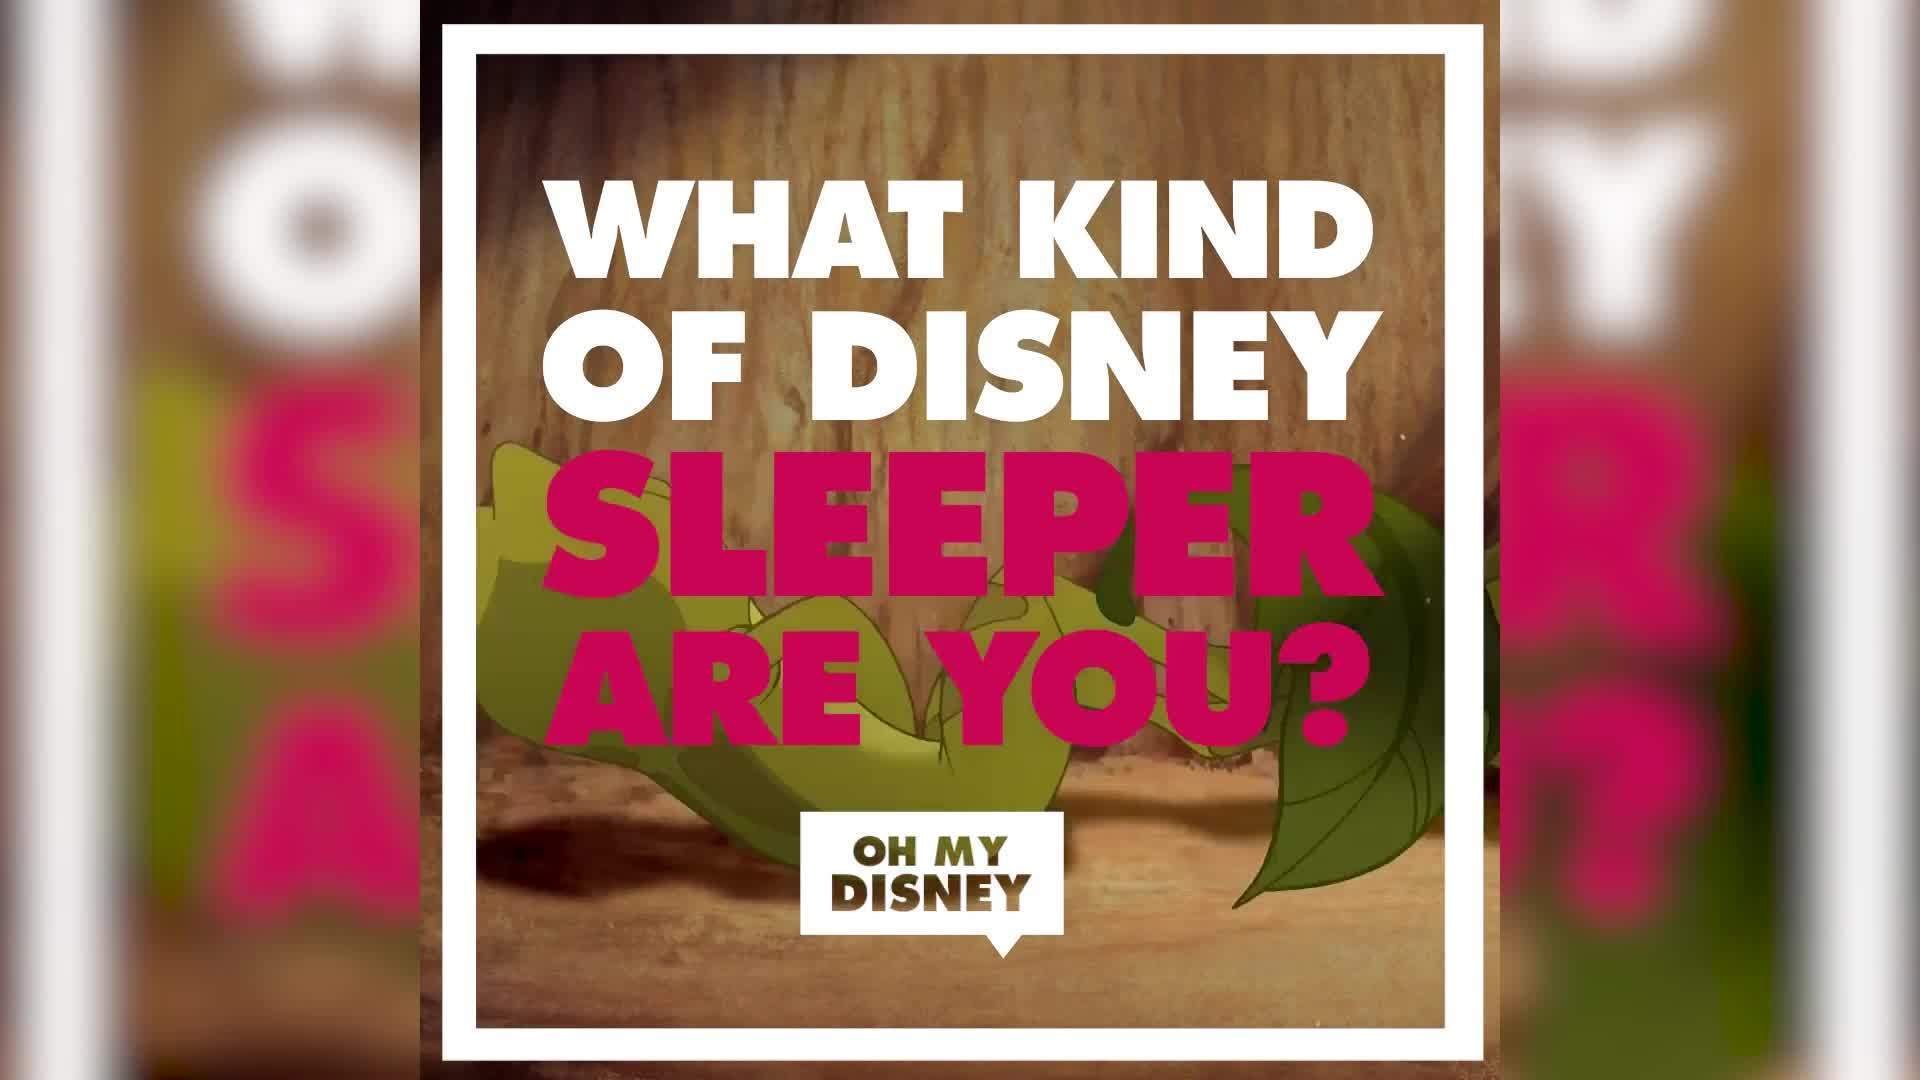 What Kind of Disney Sleeper Are You? | List Vids by Oh My Disney